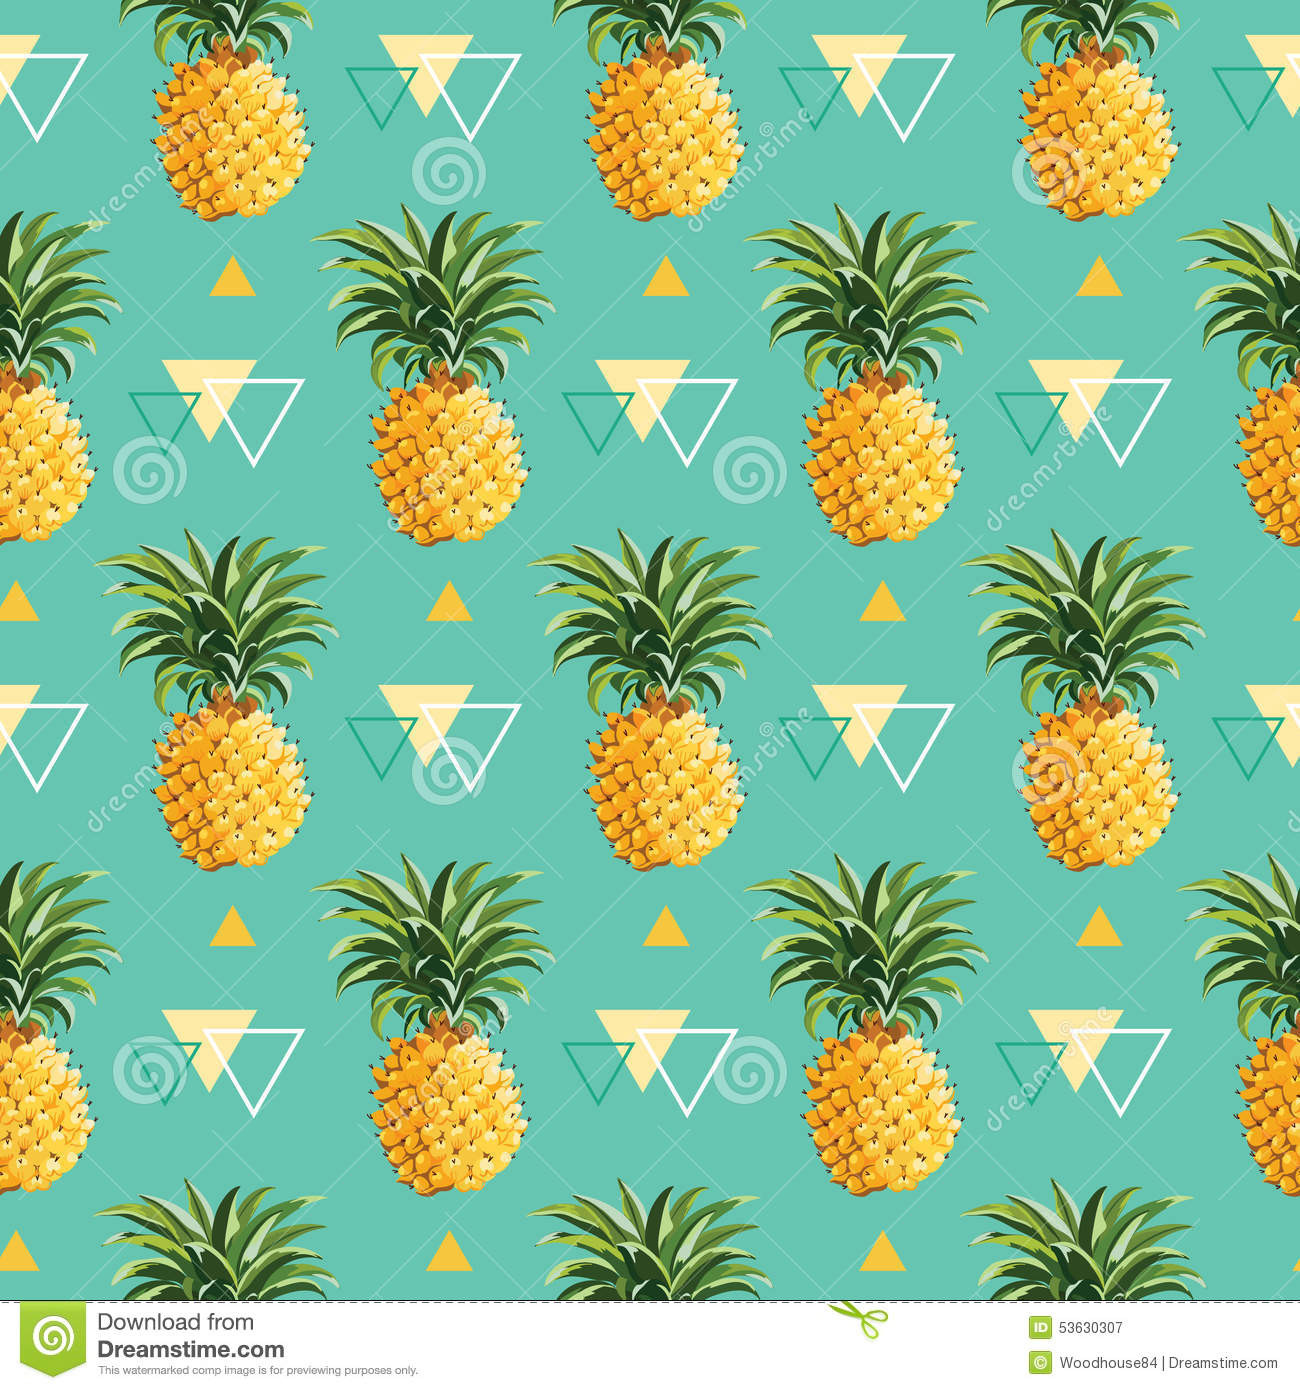 stock illustration geometric pineapple background seamless pattern vector image